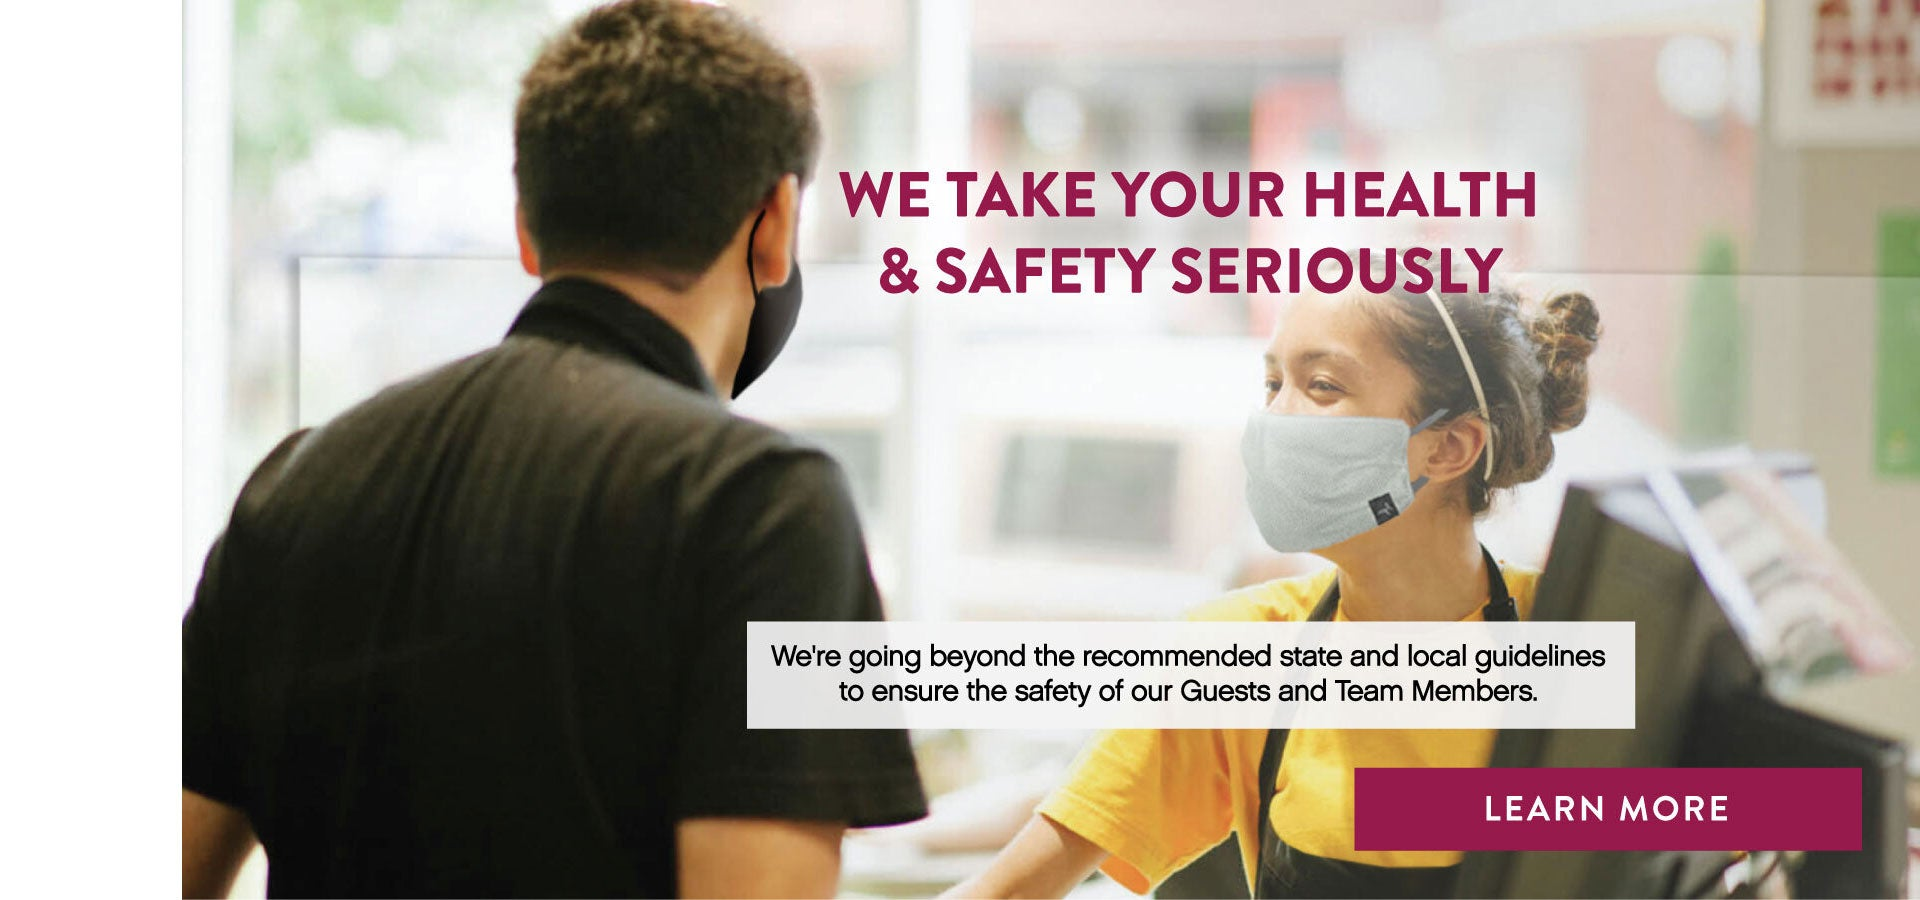 We Take Your Health & Safety Seriously